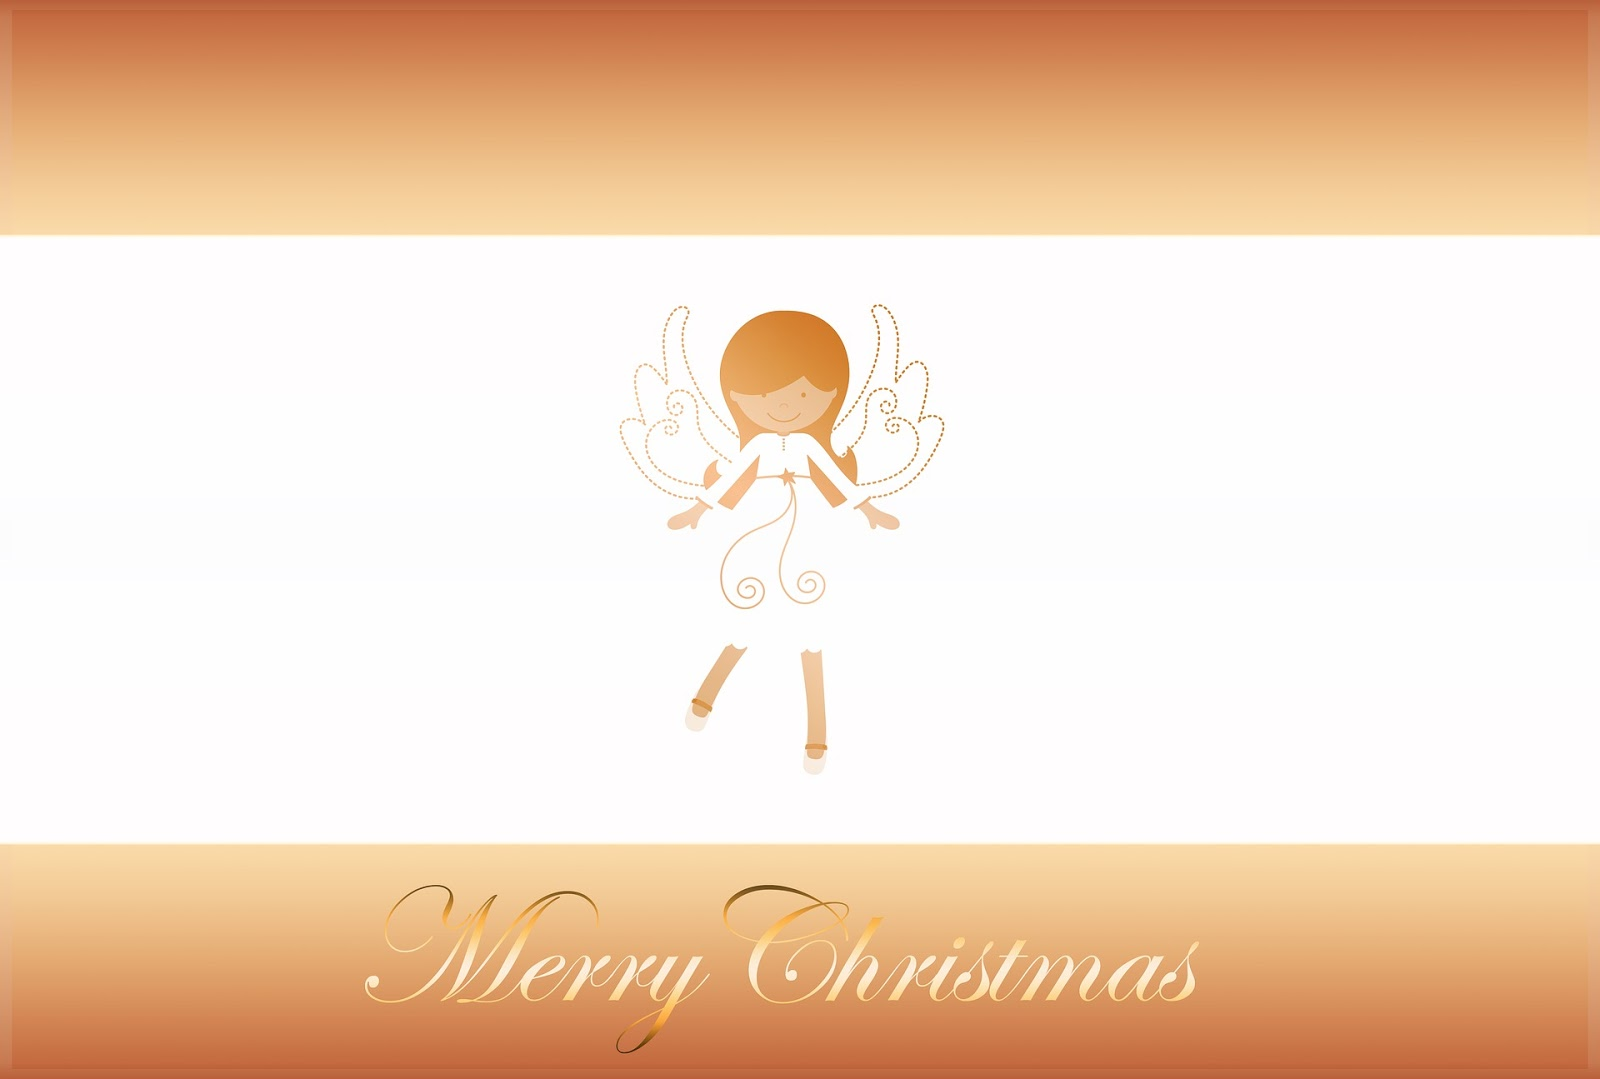 Merry Christmas 2017 HD Images Free Download